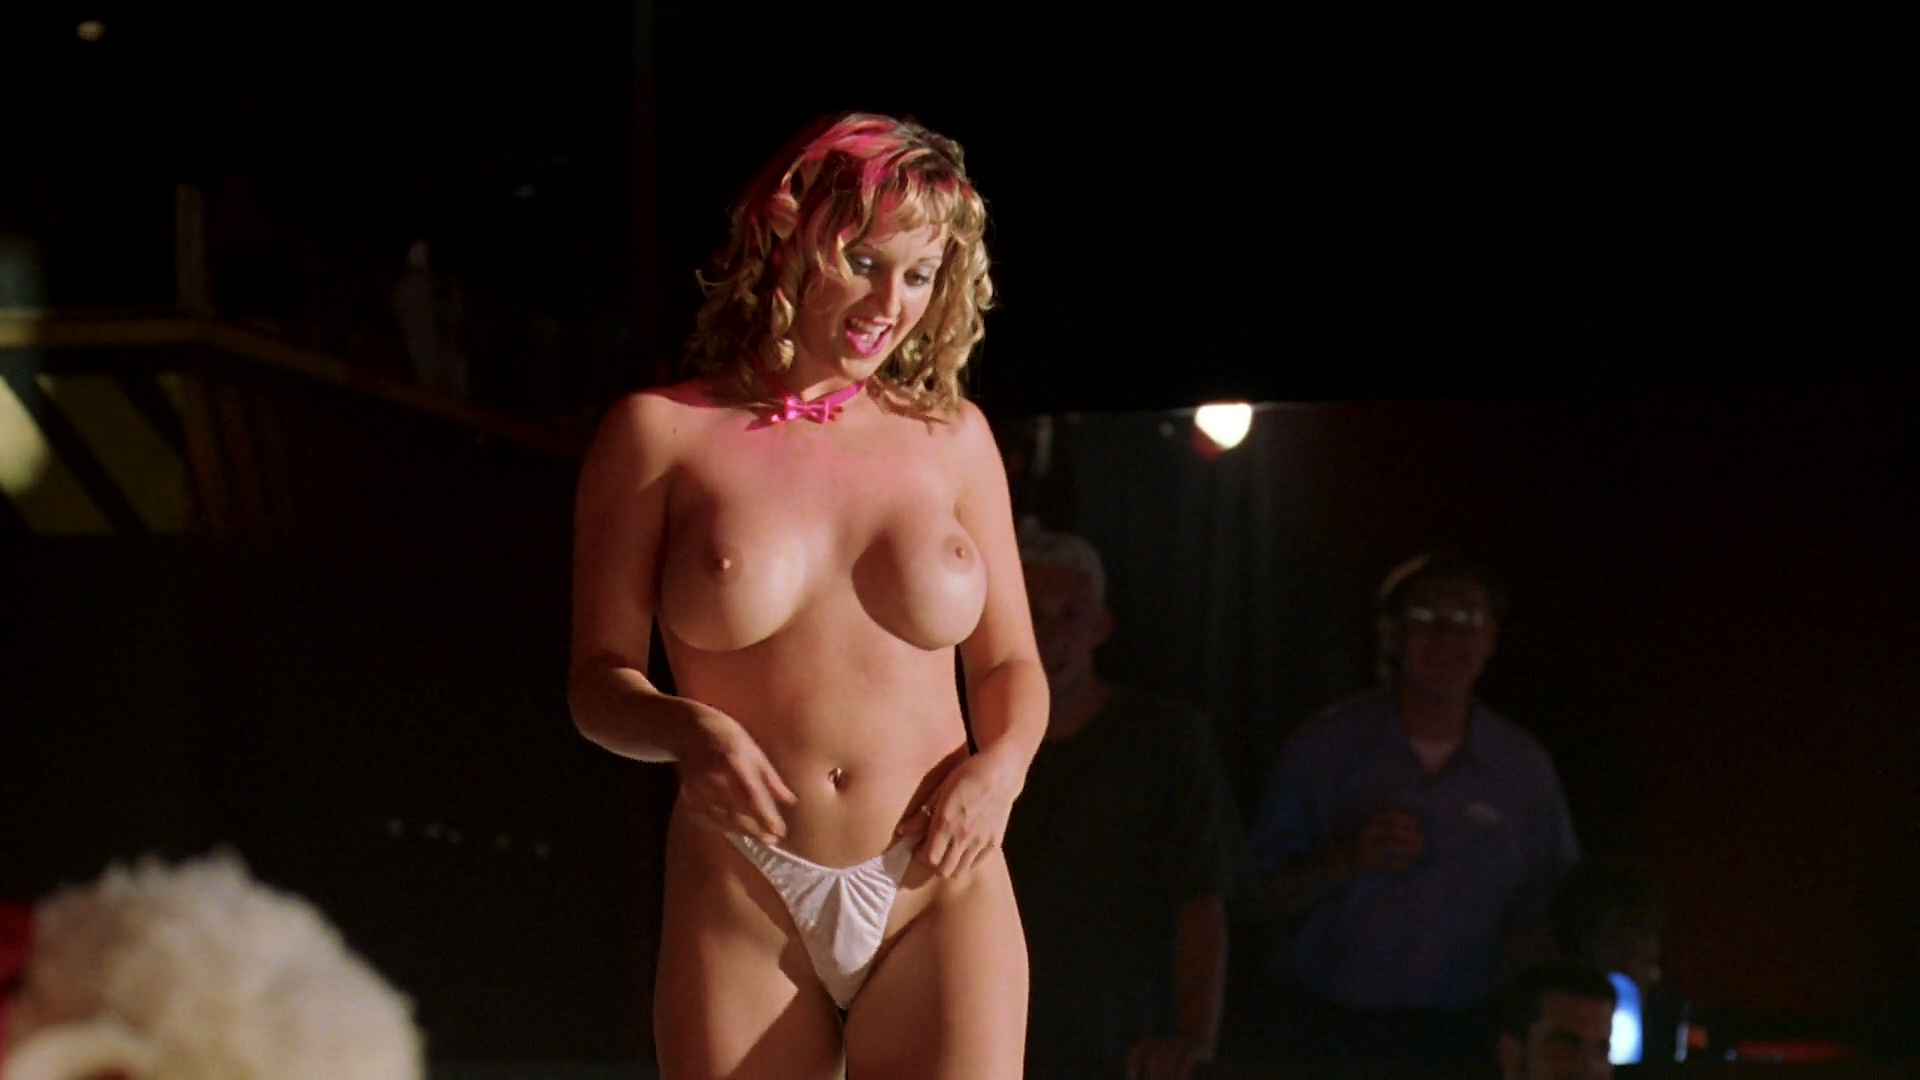 bukkake-net-cinemax-after-dark-models-nude